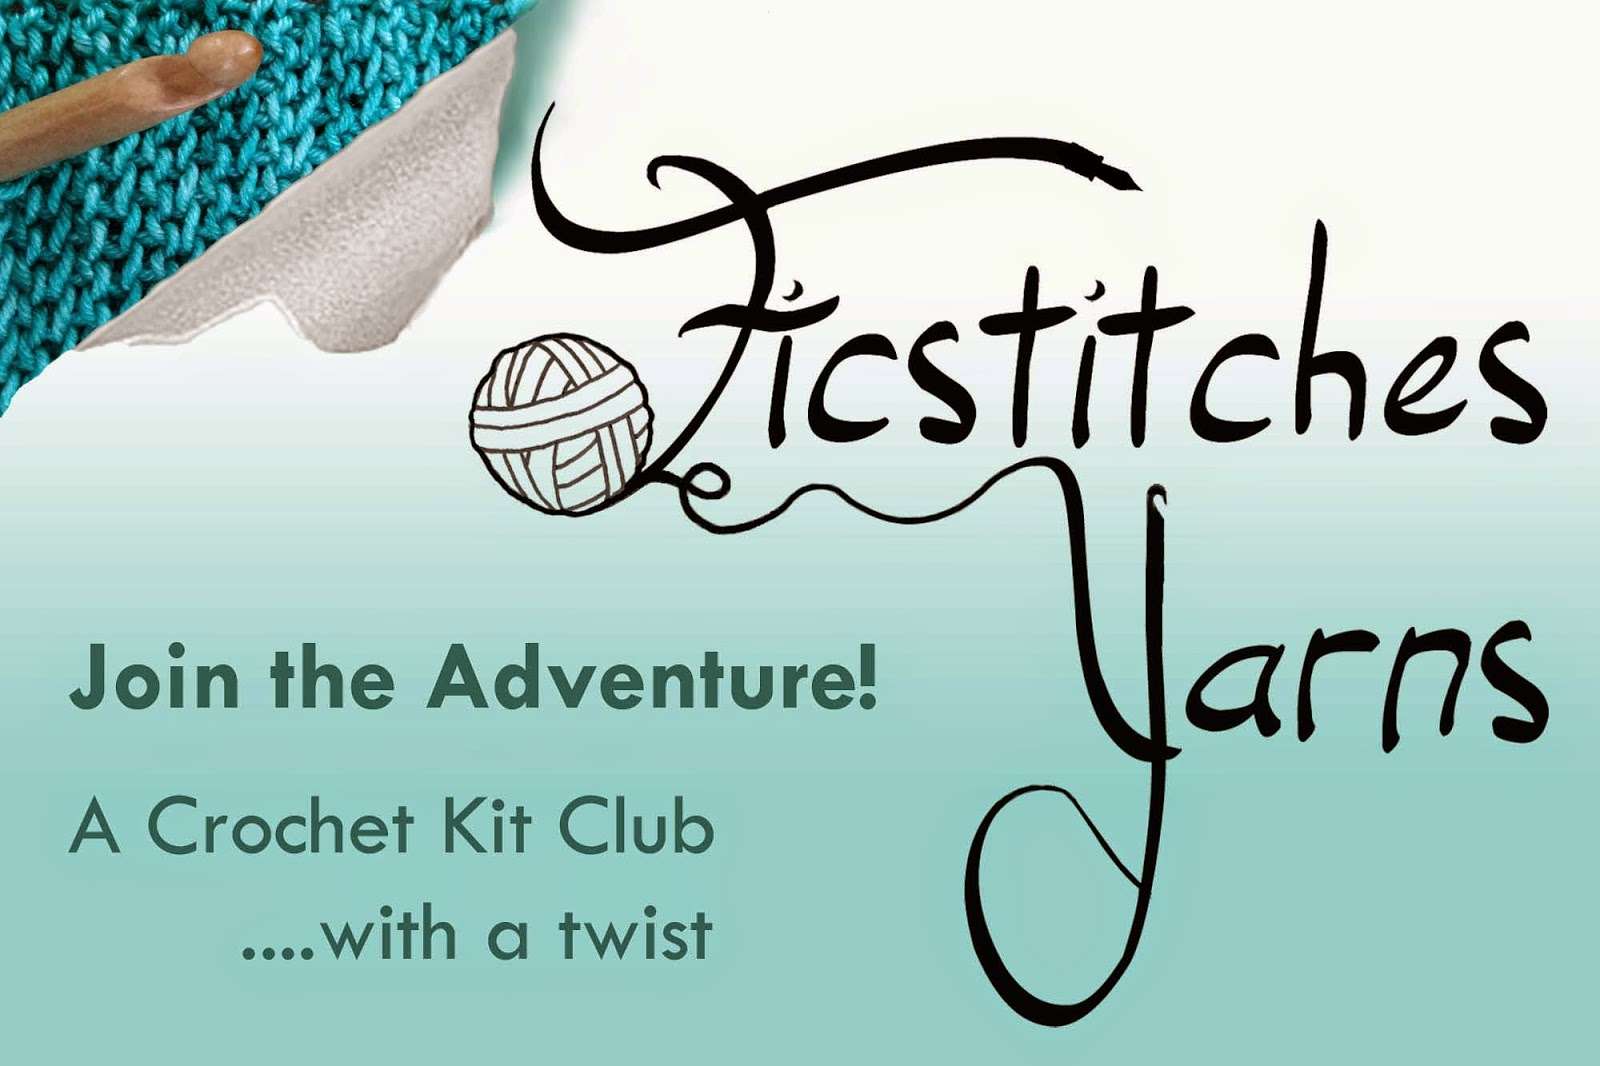 http://ficstitchesyarns.com/